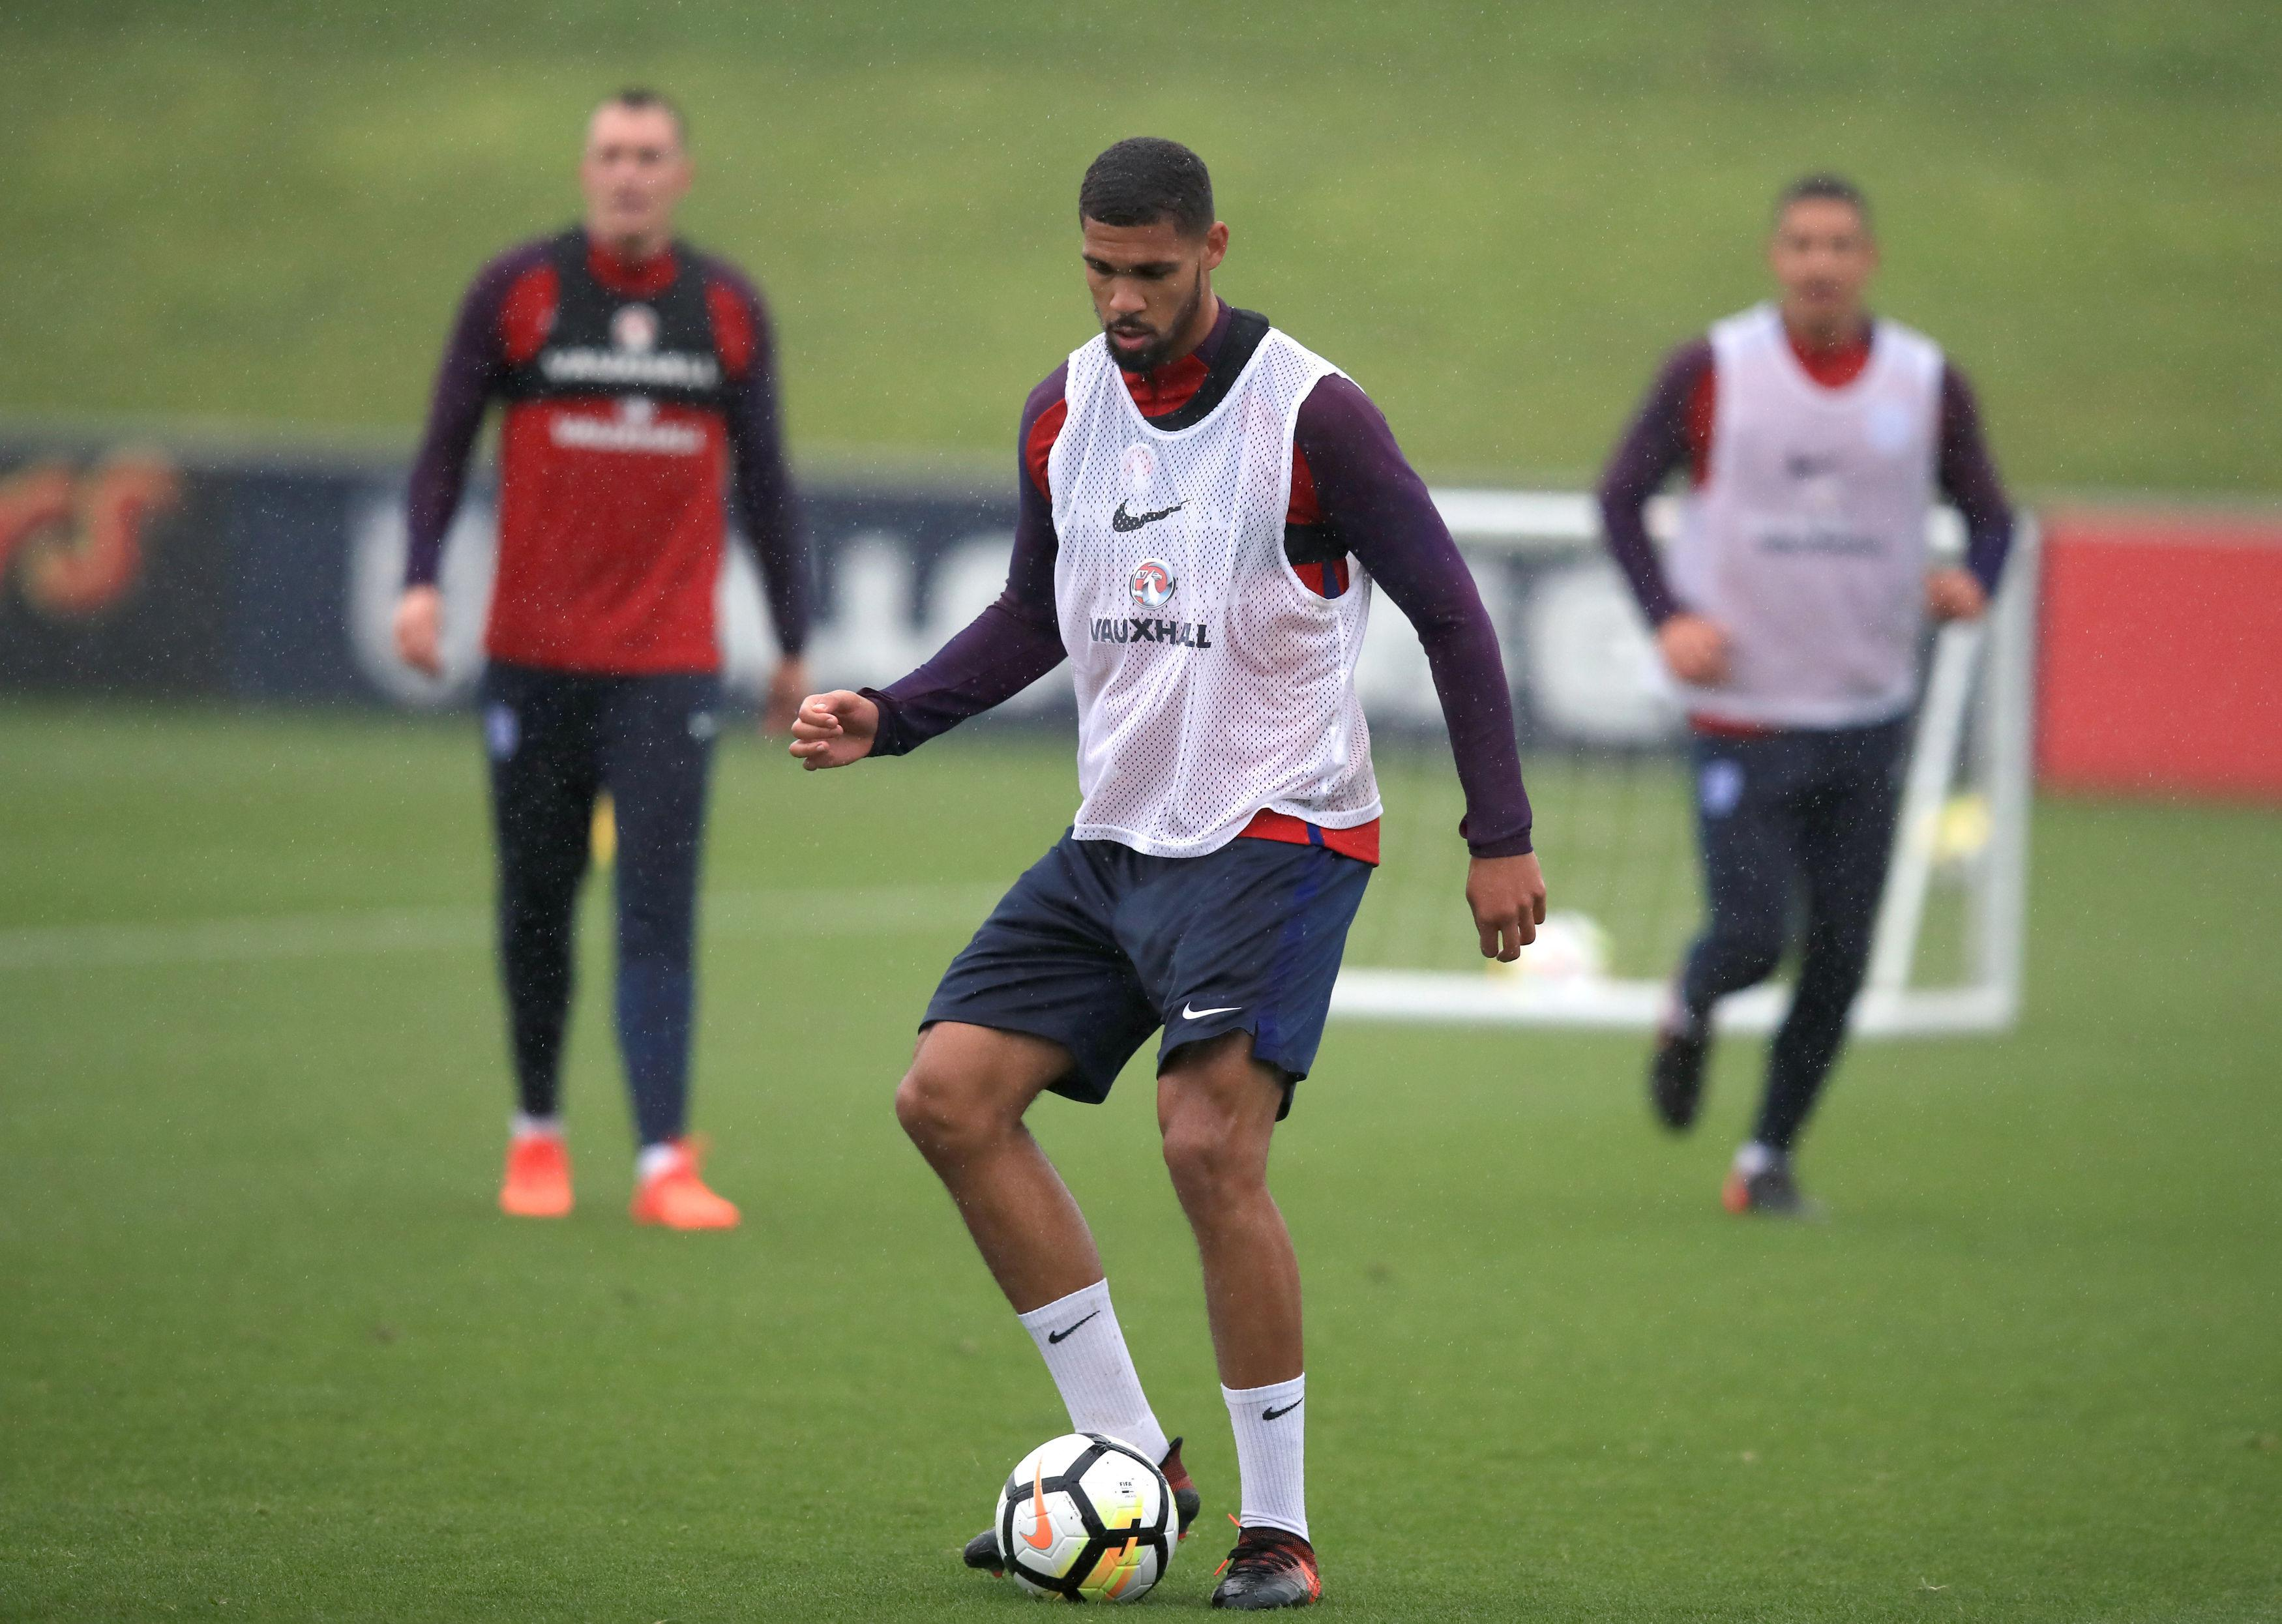 With all of the recent England drop-outs, Loftus-Cheek is hotly tipped to make his debut against Germany on Friday